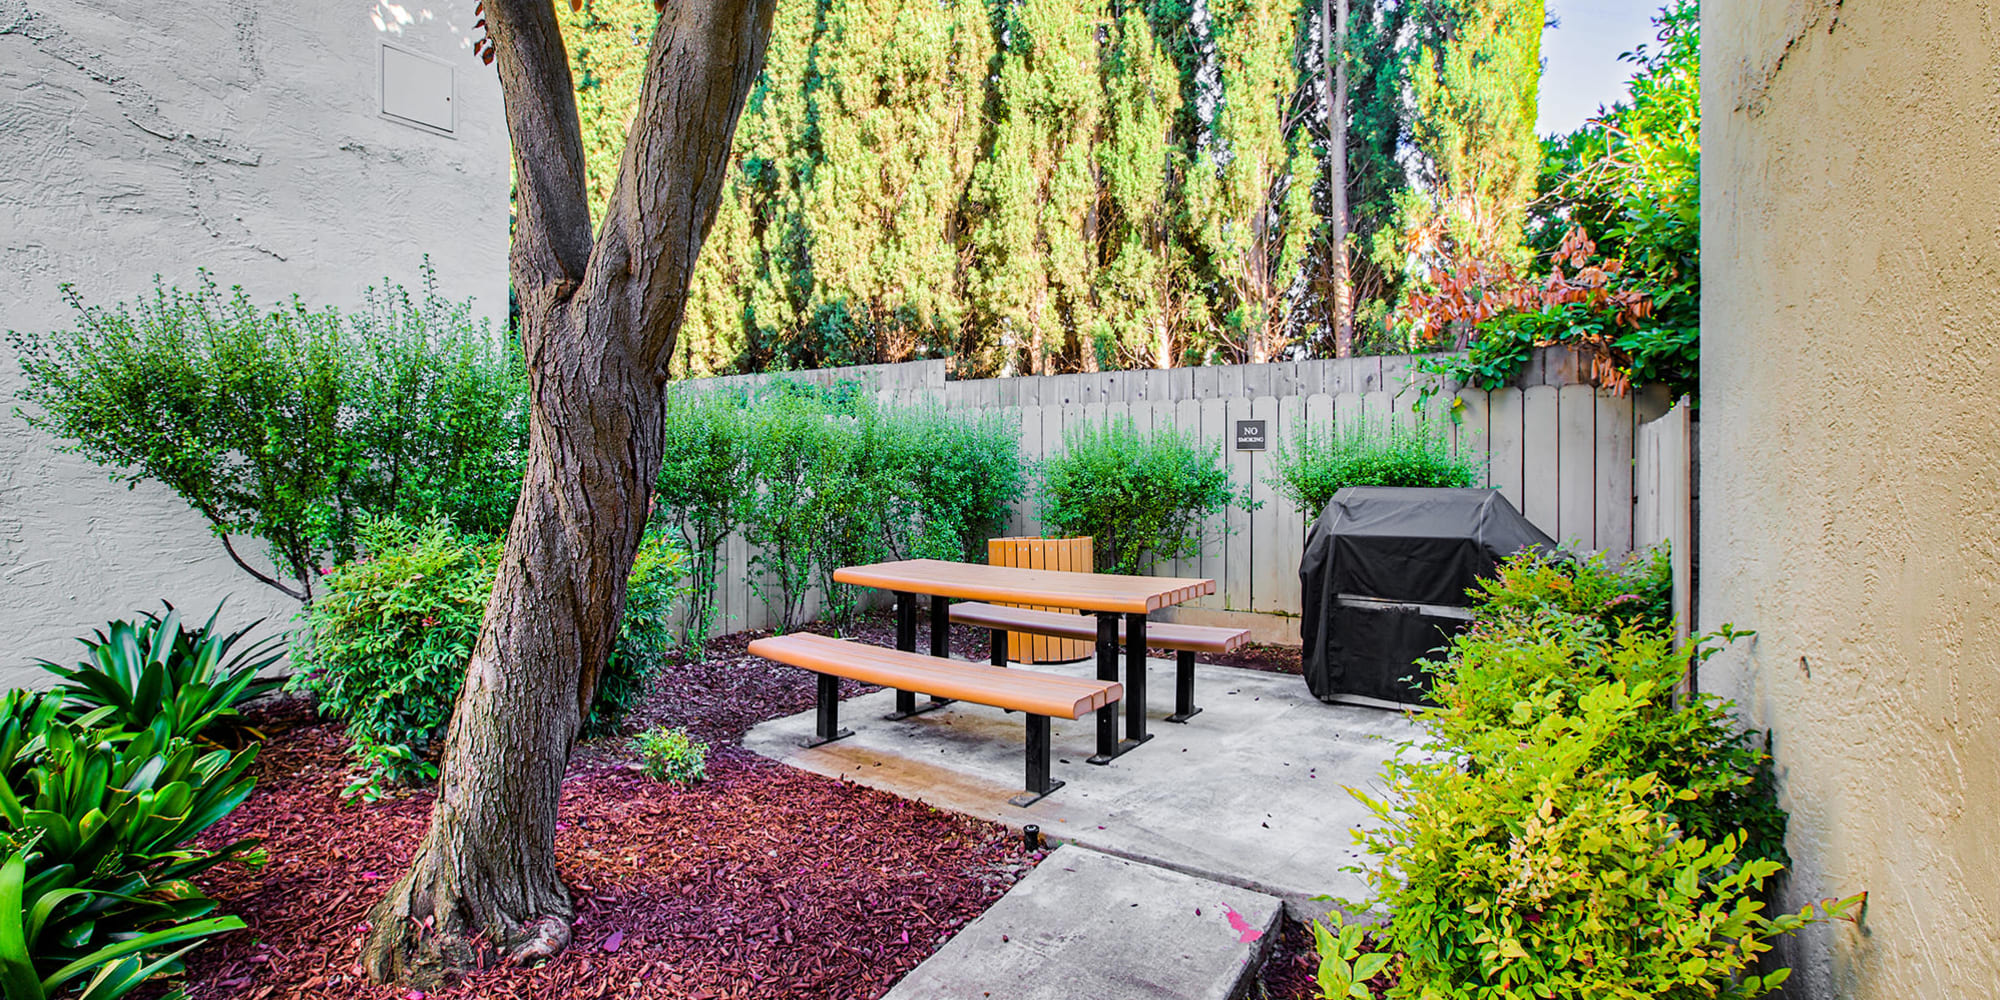 Barbecue area surrounded by lush landscaping at Pleasanton Place Apartment Homes in Pleasanton, California